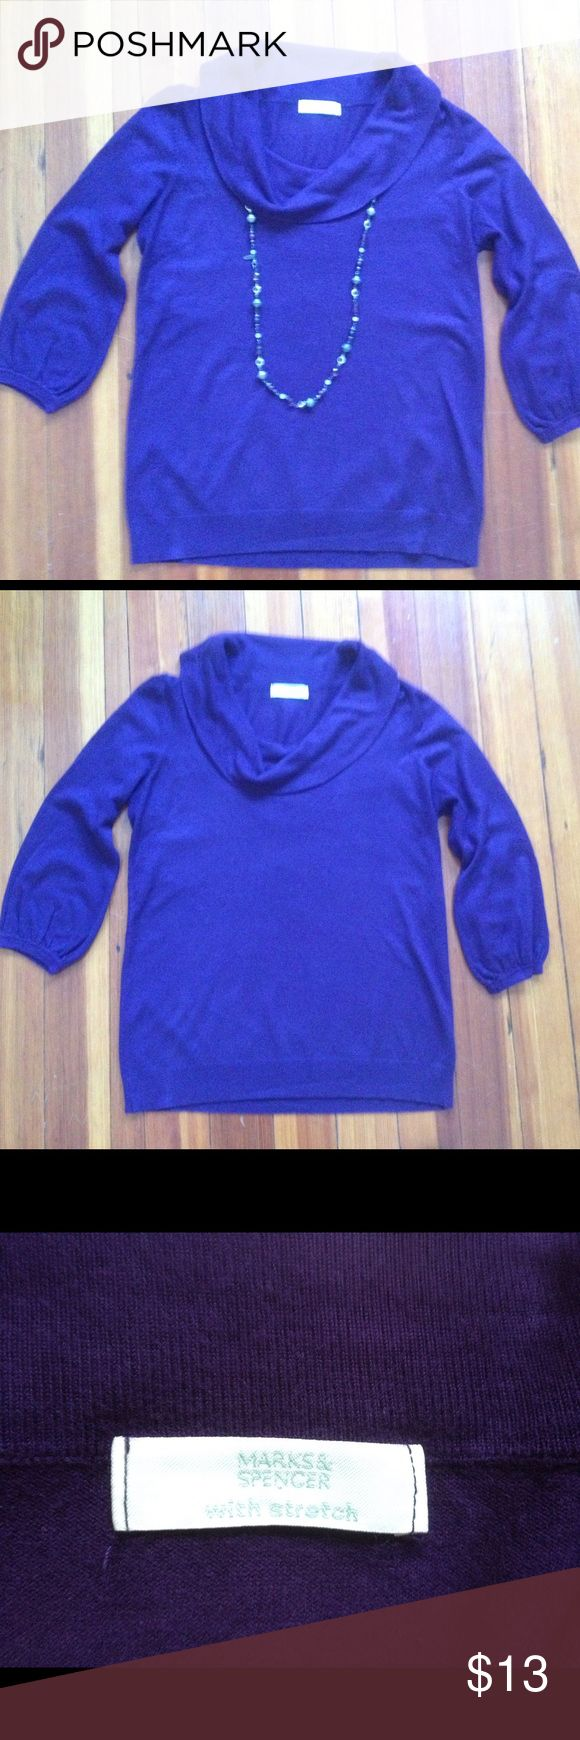 Marks & Spencer Purple Cowl Neck Sweater 3/4 sleeve stretchy cowl neck sweater. My camera wouldn't capture the color well; it's actually a deep plum purple color (seen best in the third picture). Looks great with a pair of black or gray pants for work, or with a pair of jeans and heels for a night out. UK size 12, fits like a US small. Marks & Spencer  Sweaters Cowl & Turtlenecks